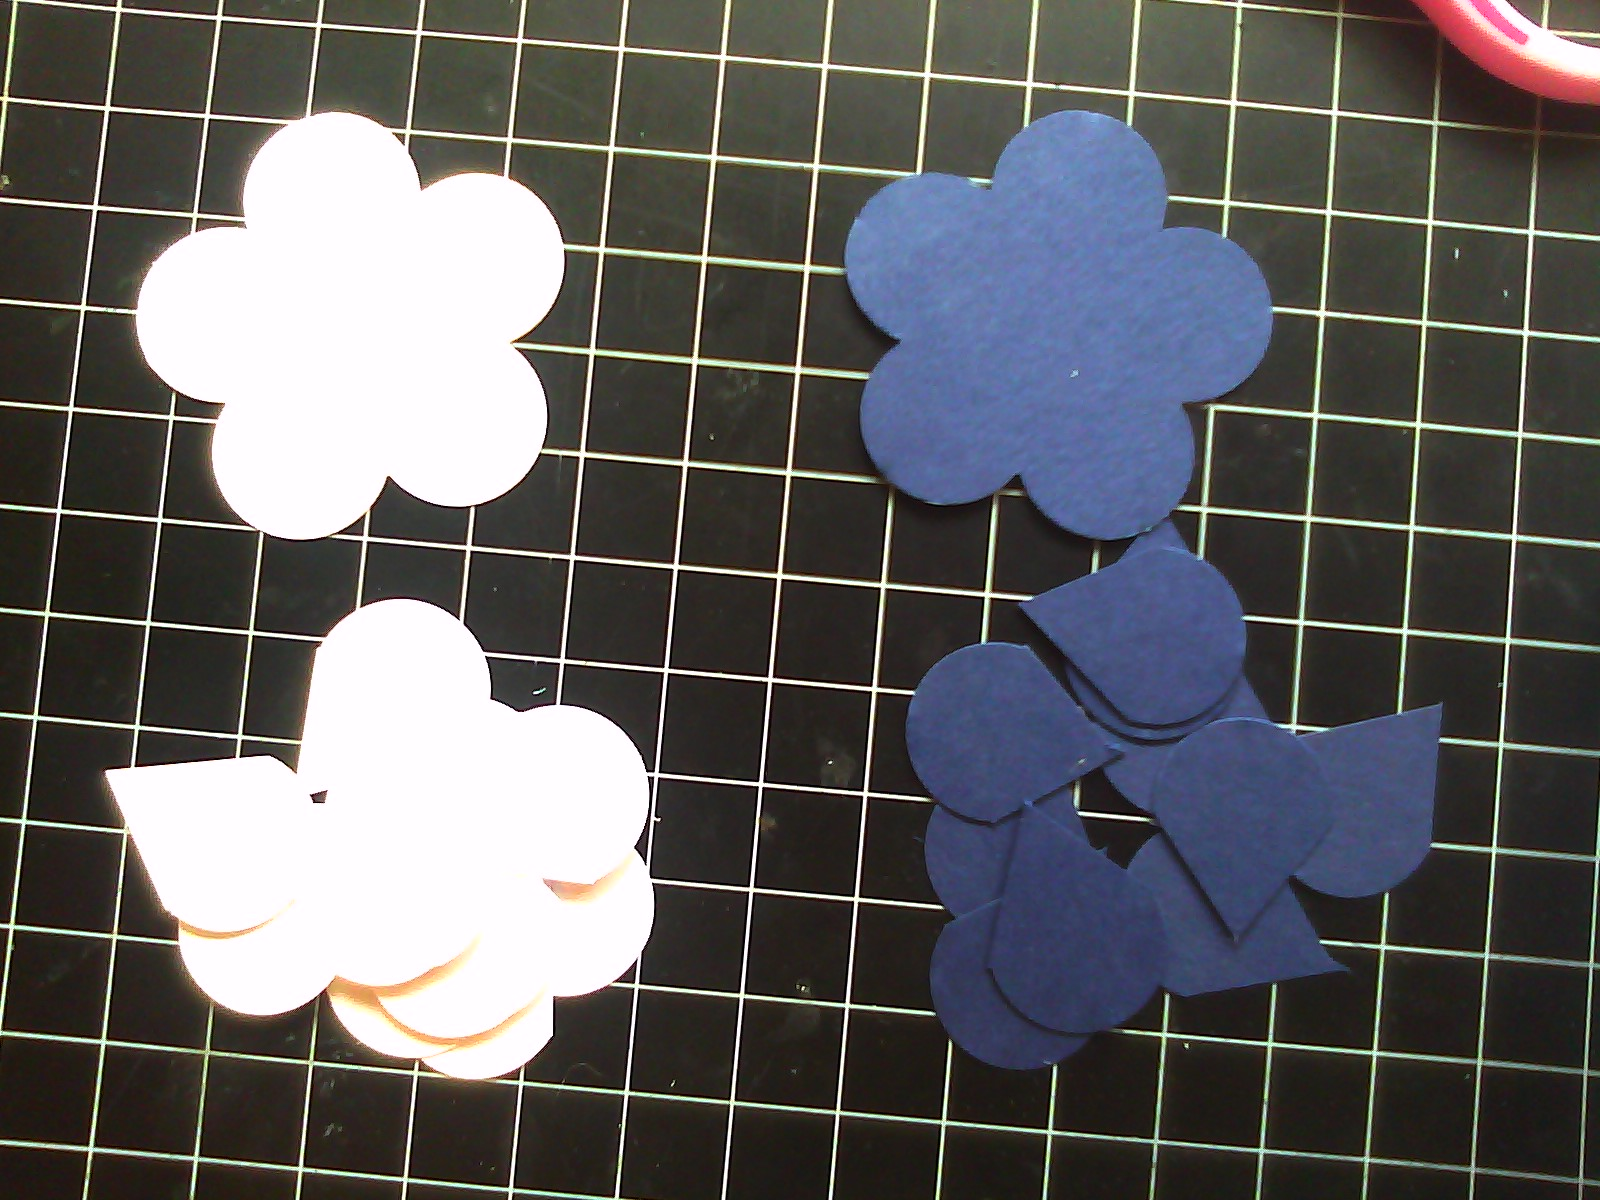 How to scrapbook flowers - After Punching Flowers In Your Chosen Colors Cut Each Petal To The Center An Separate